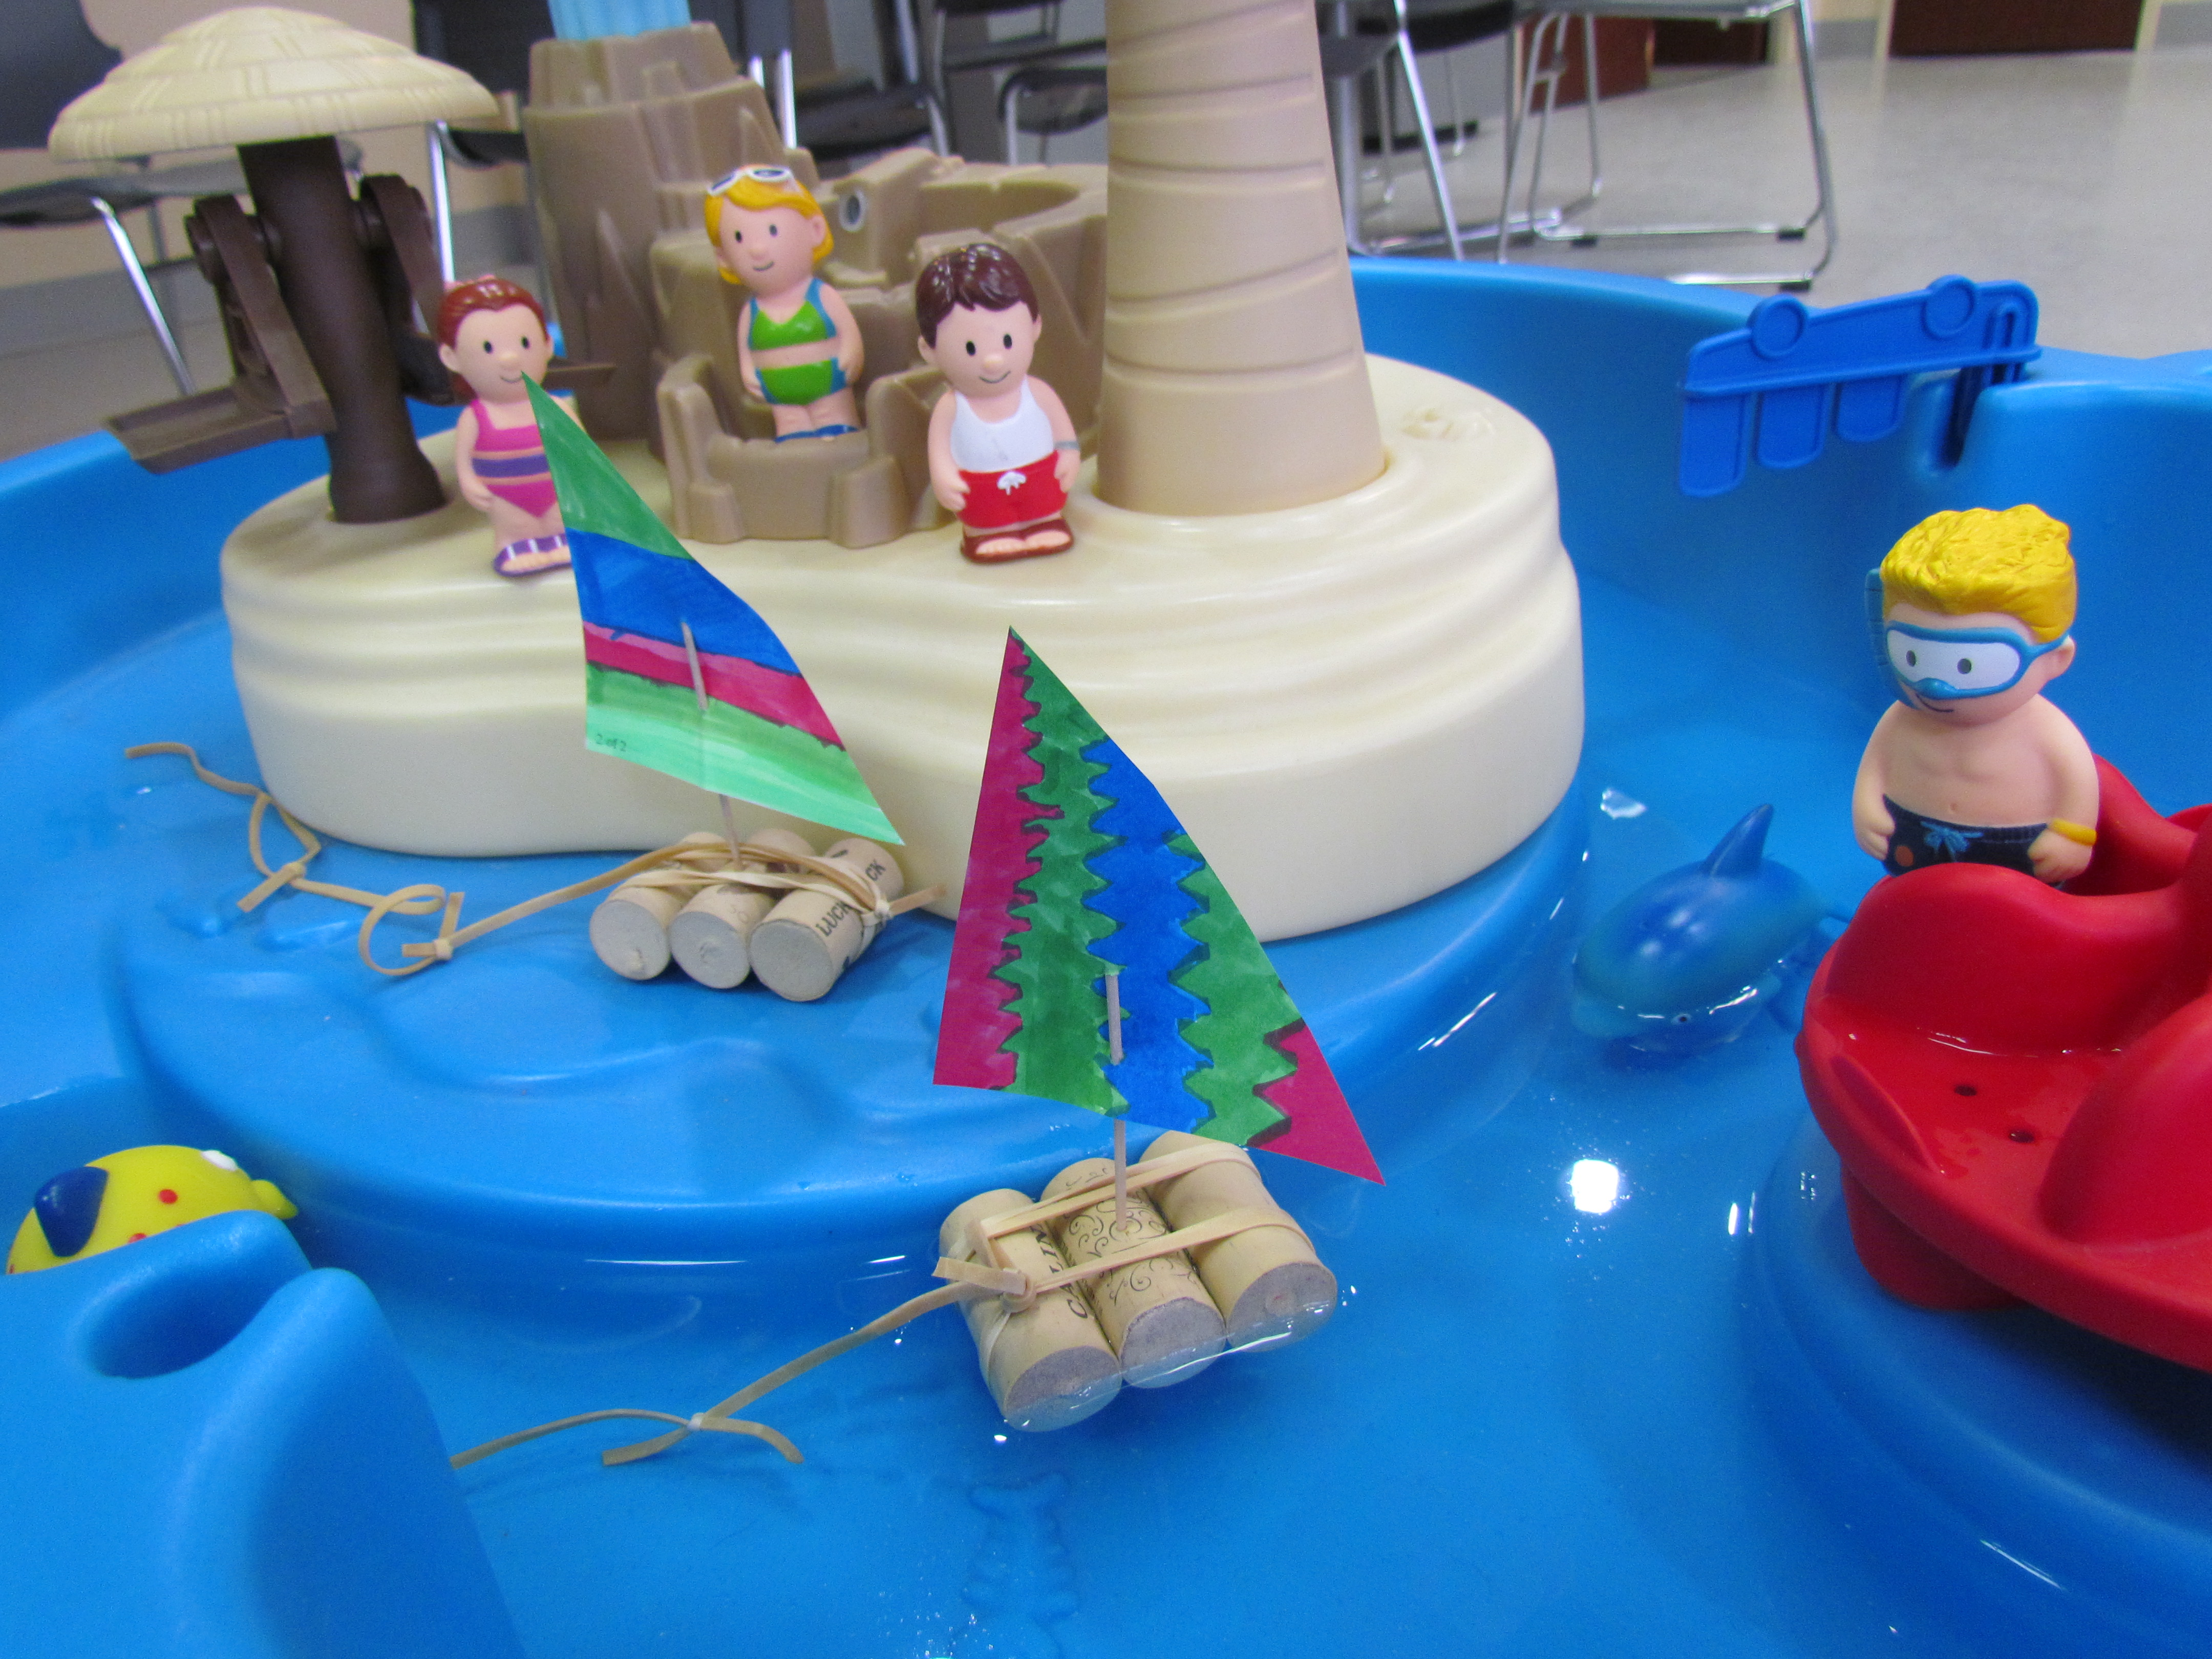 toy boats in kid's water table